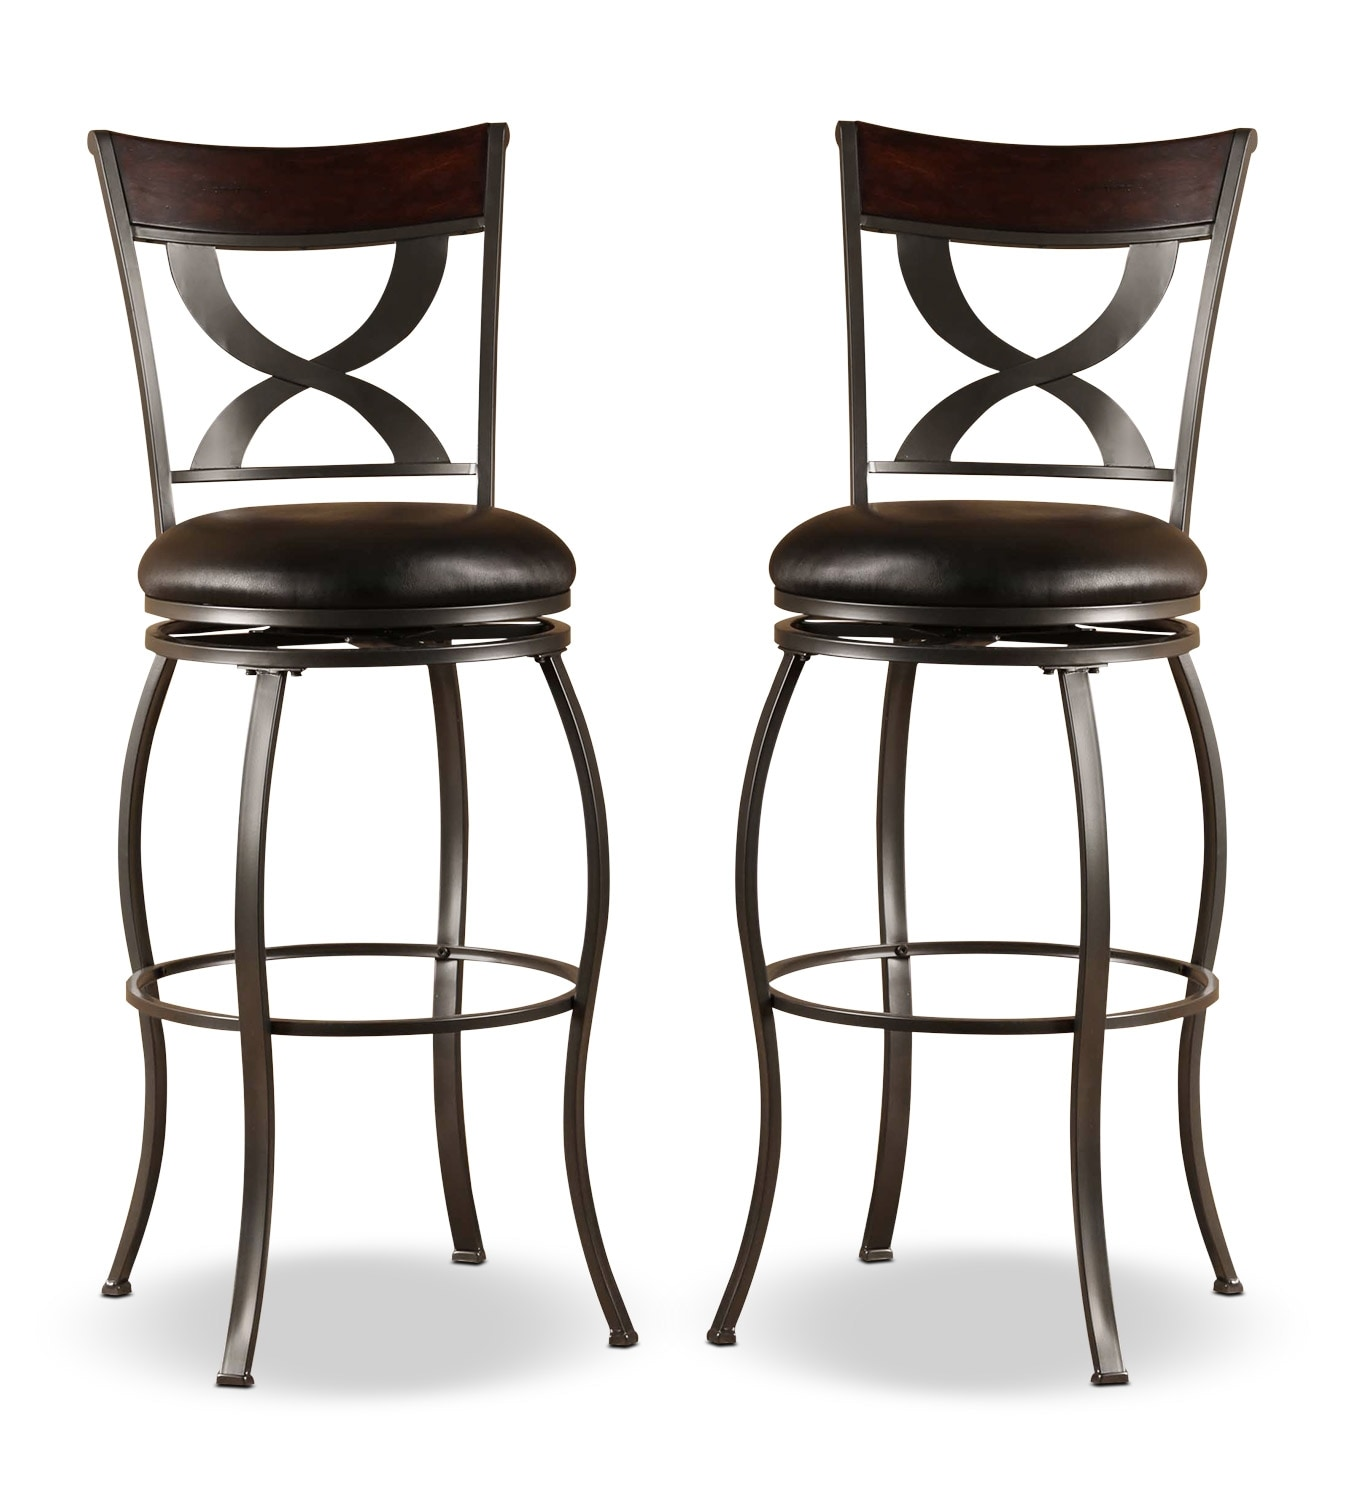 Stockport Swivel Barstool – Set of 2